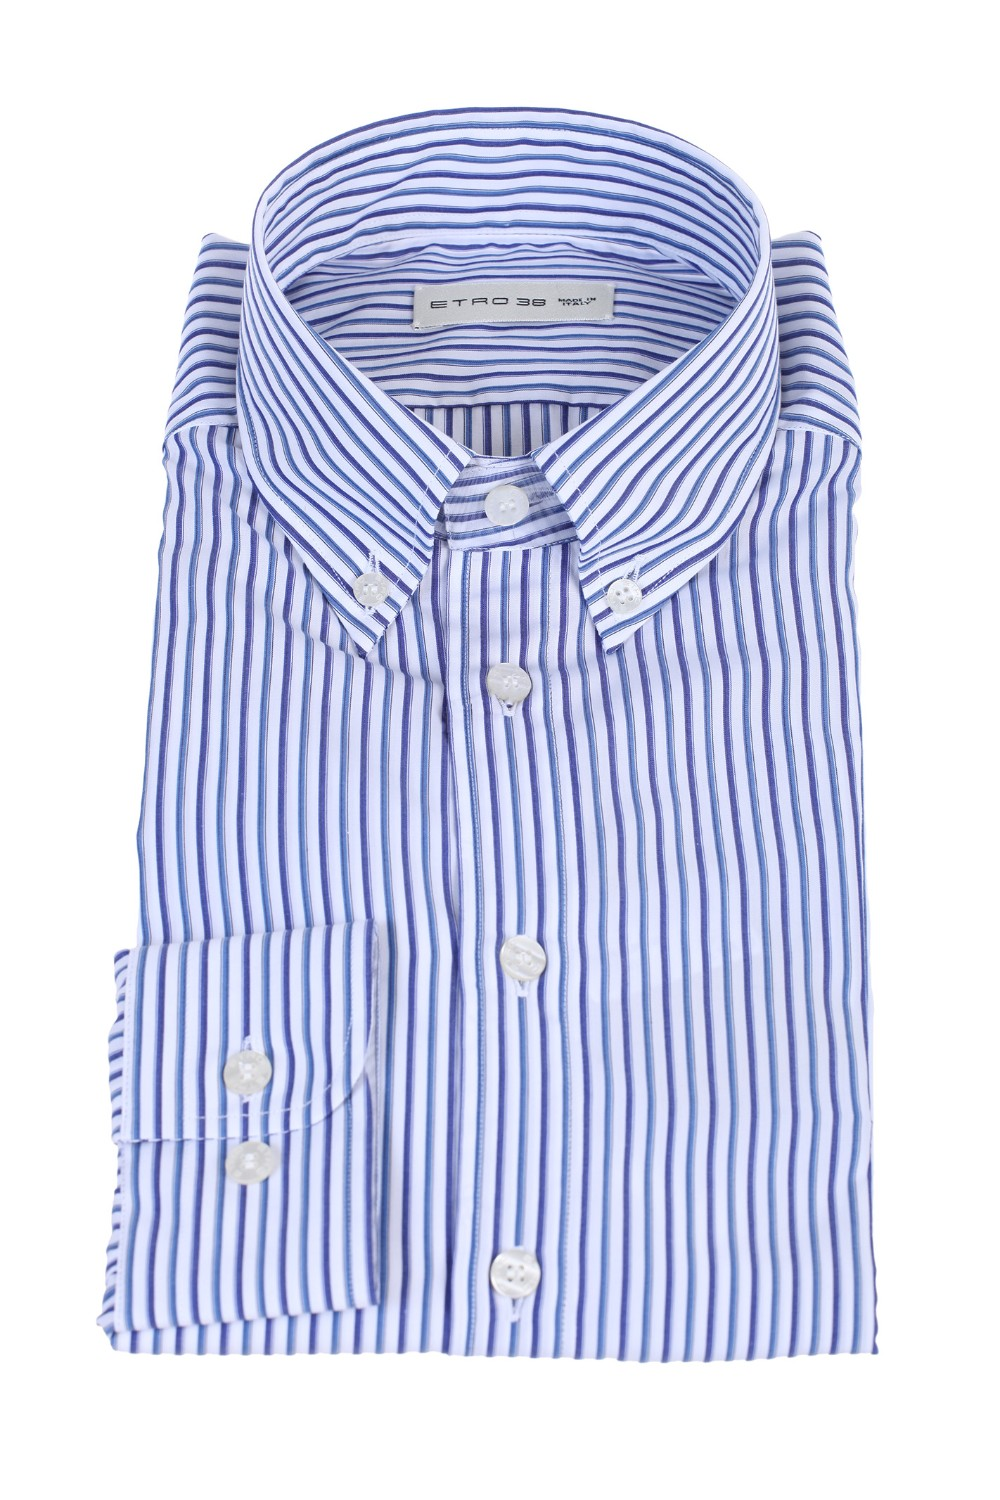 shop ETRO  Camicia: Etro camicia in cotone a righe verticali. Colletto button down. Polsino con due bottoni orizzontali per regolarne l'ampiezza. Logo frontale a contrasto. Vestibilità leggermente slim. Composizione: 100% cotone. Made in Italy.. 1K964 3326-0200 number 8844314